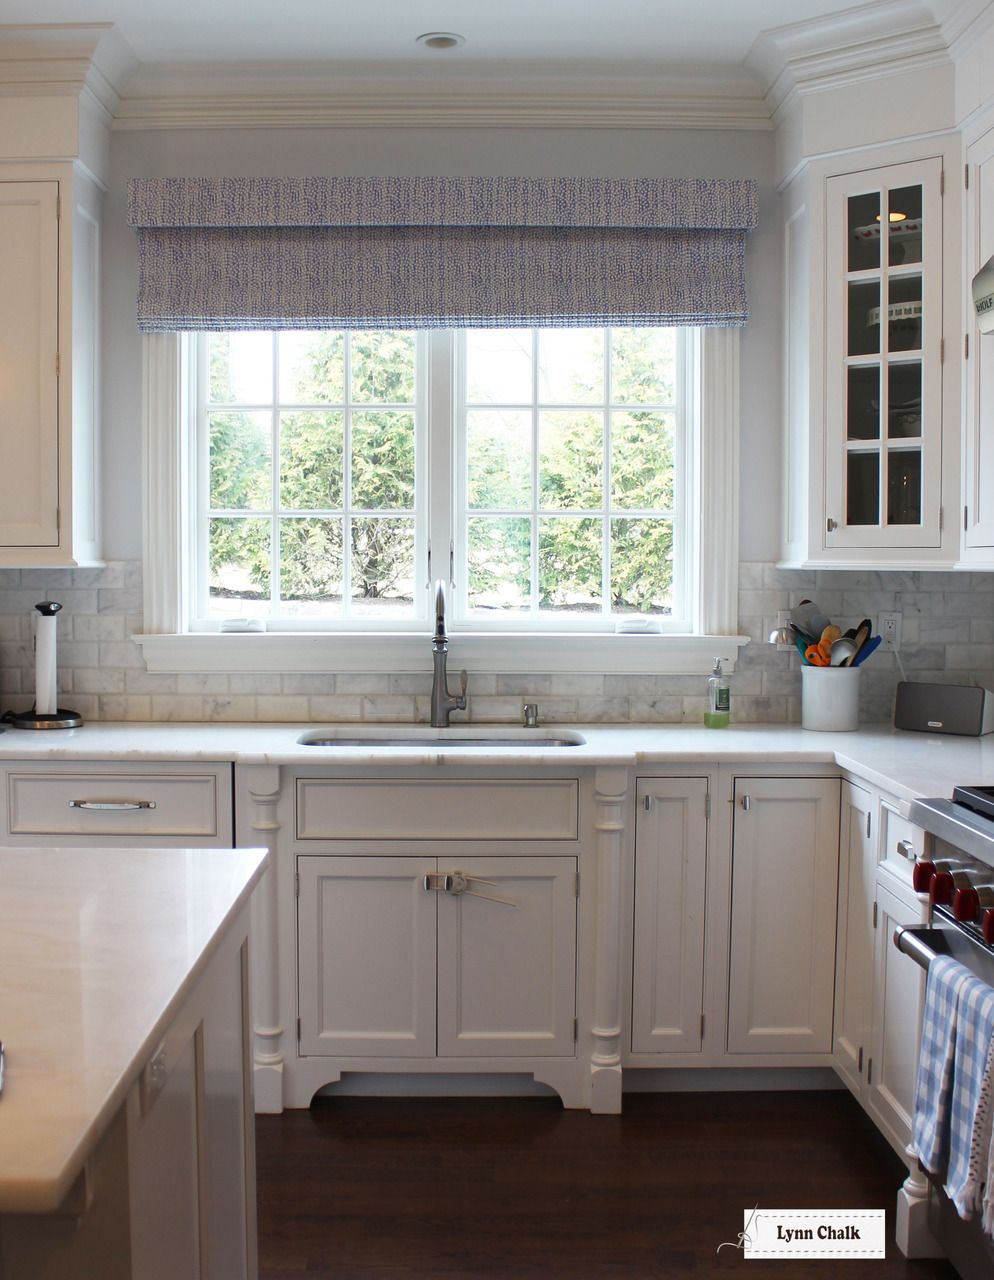 Quadrille Alan Campbell Mojave Roman Shades In Kitchen Shown In Periwinkle Comes On Other Colors Interior Design Kitchen Kitchen Interior Kitchen Remodel